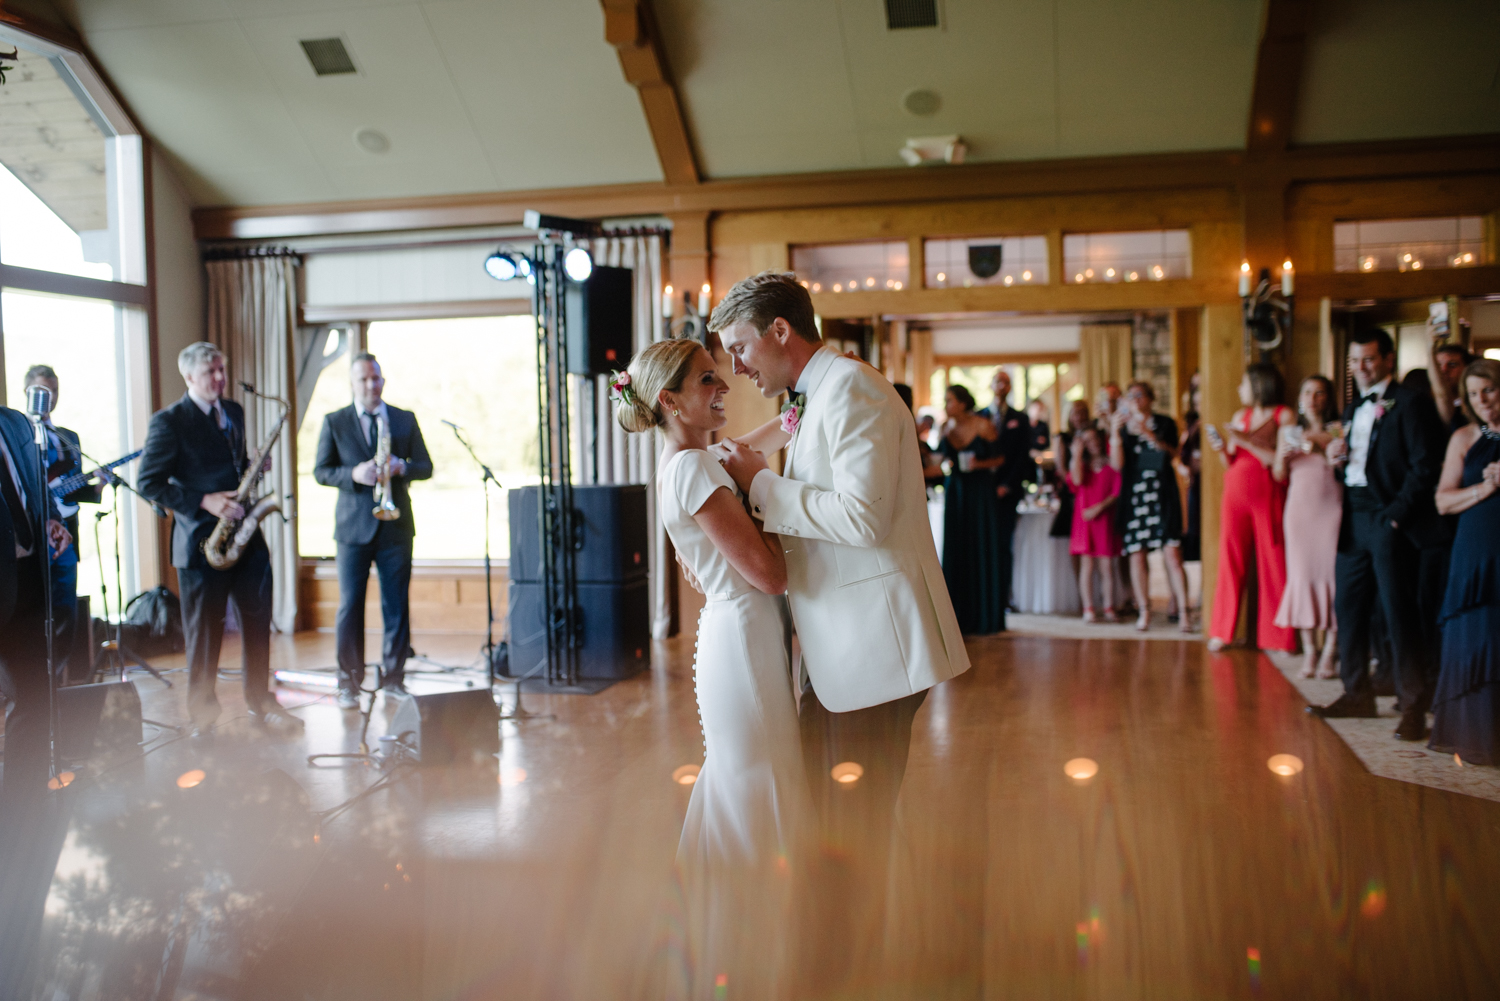 Poetry-&-motion-wedding-photography-elk-river-club-emily-&-chad35.jpg